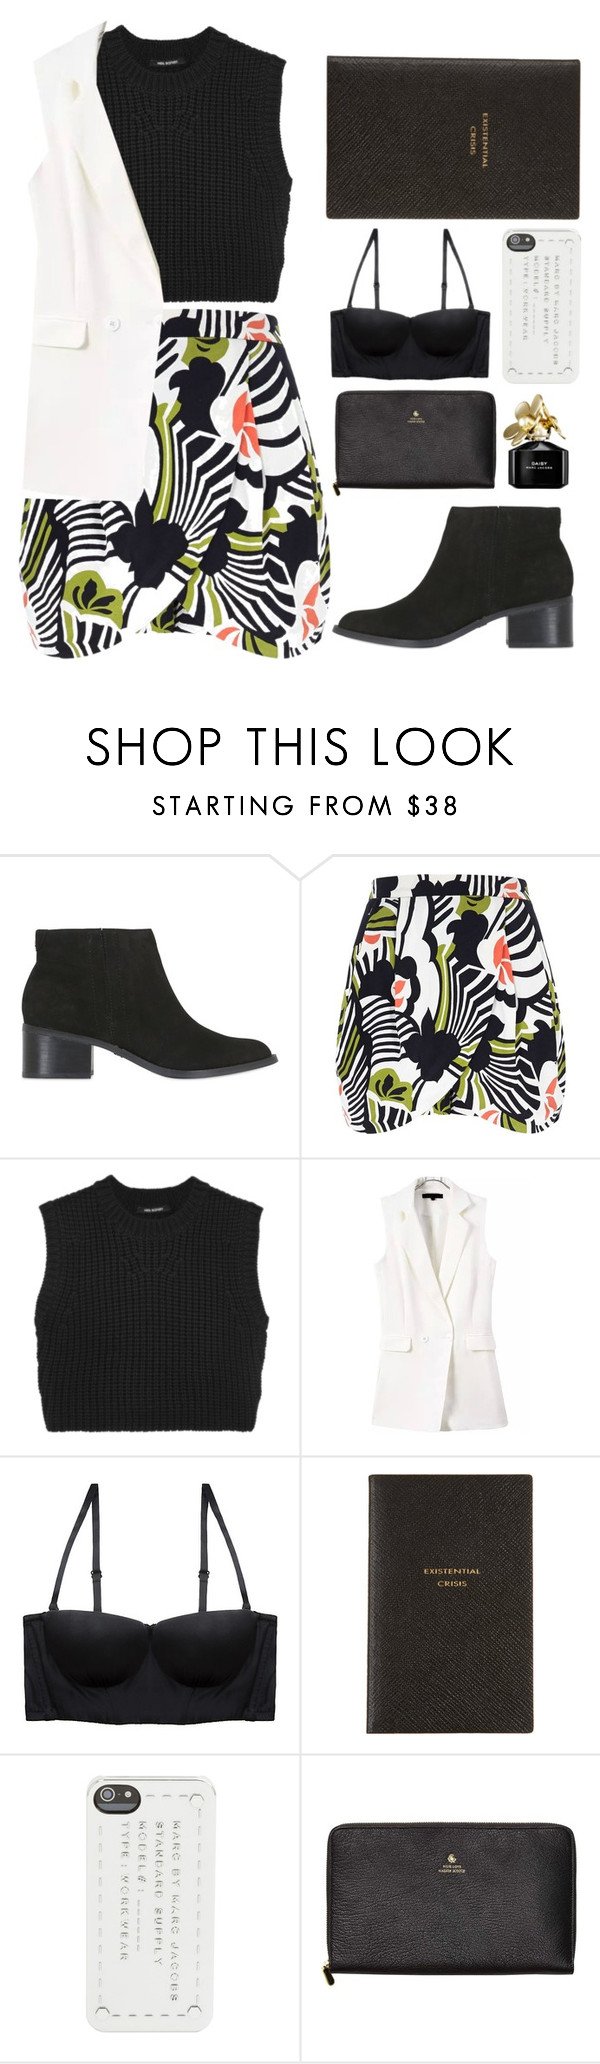 """Sem título #631"" by andreiasilva07 ❤ liked on Polyvore featuring KG Kurt Geiger, River Island, Neil Barrett, La Perla, Smythson, Marc by Marc Jacobs, Scotch & Soda and Marc Jacobs"